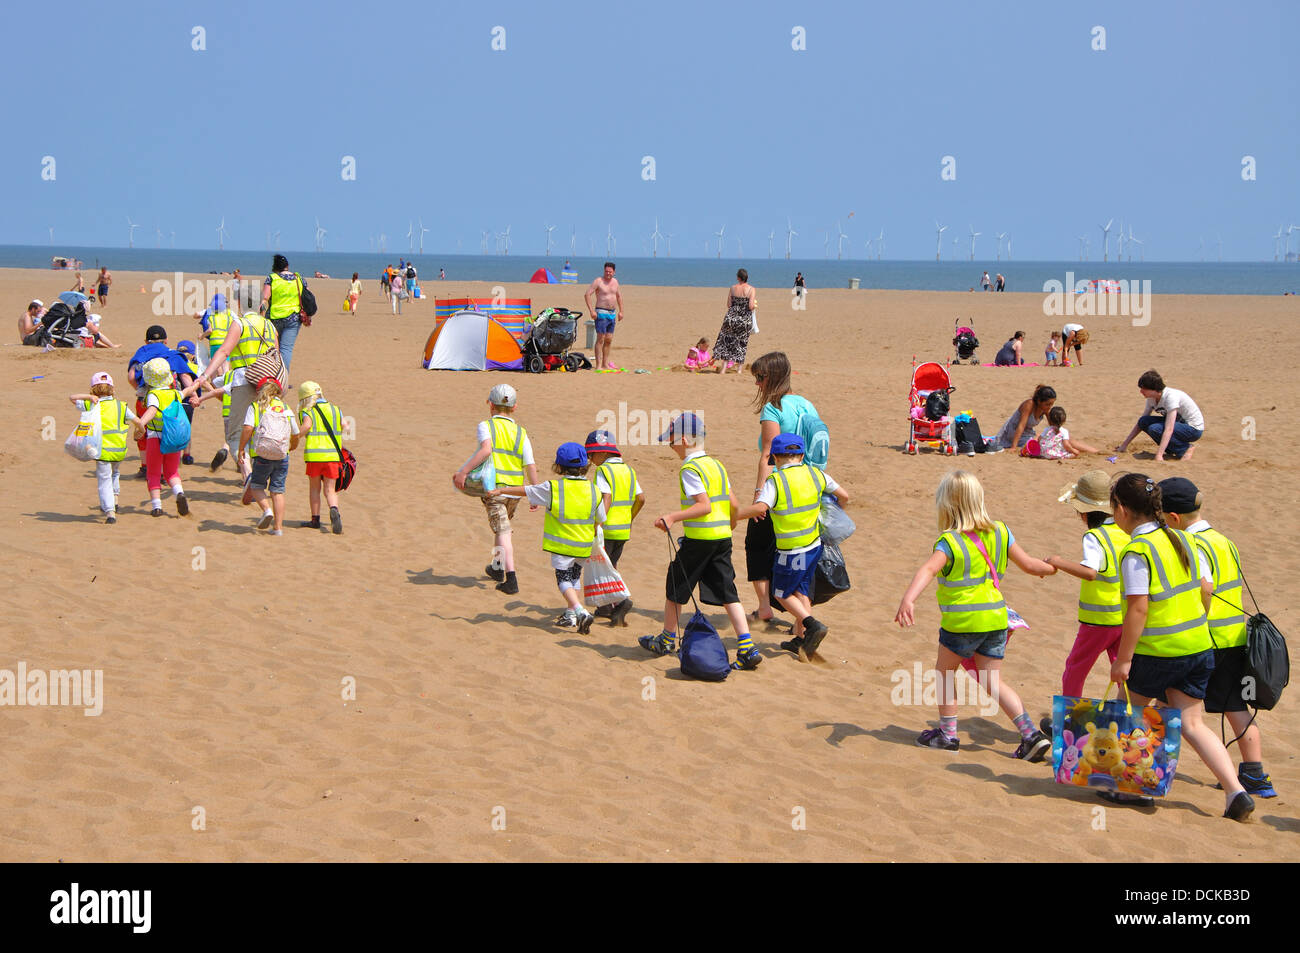 group of school children walking on the beach, Skegness, Lincolnshire, England, UK - Stock Image